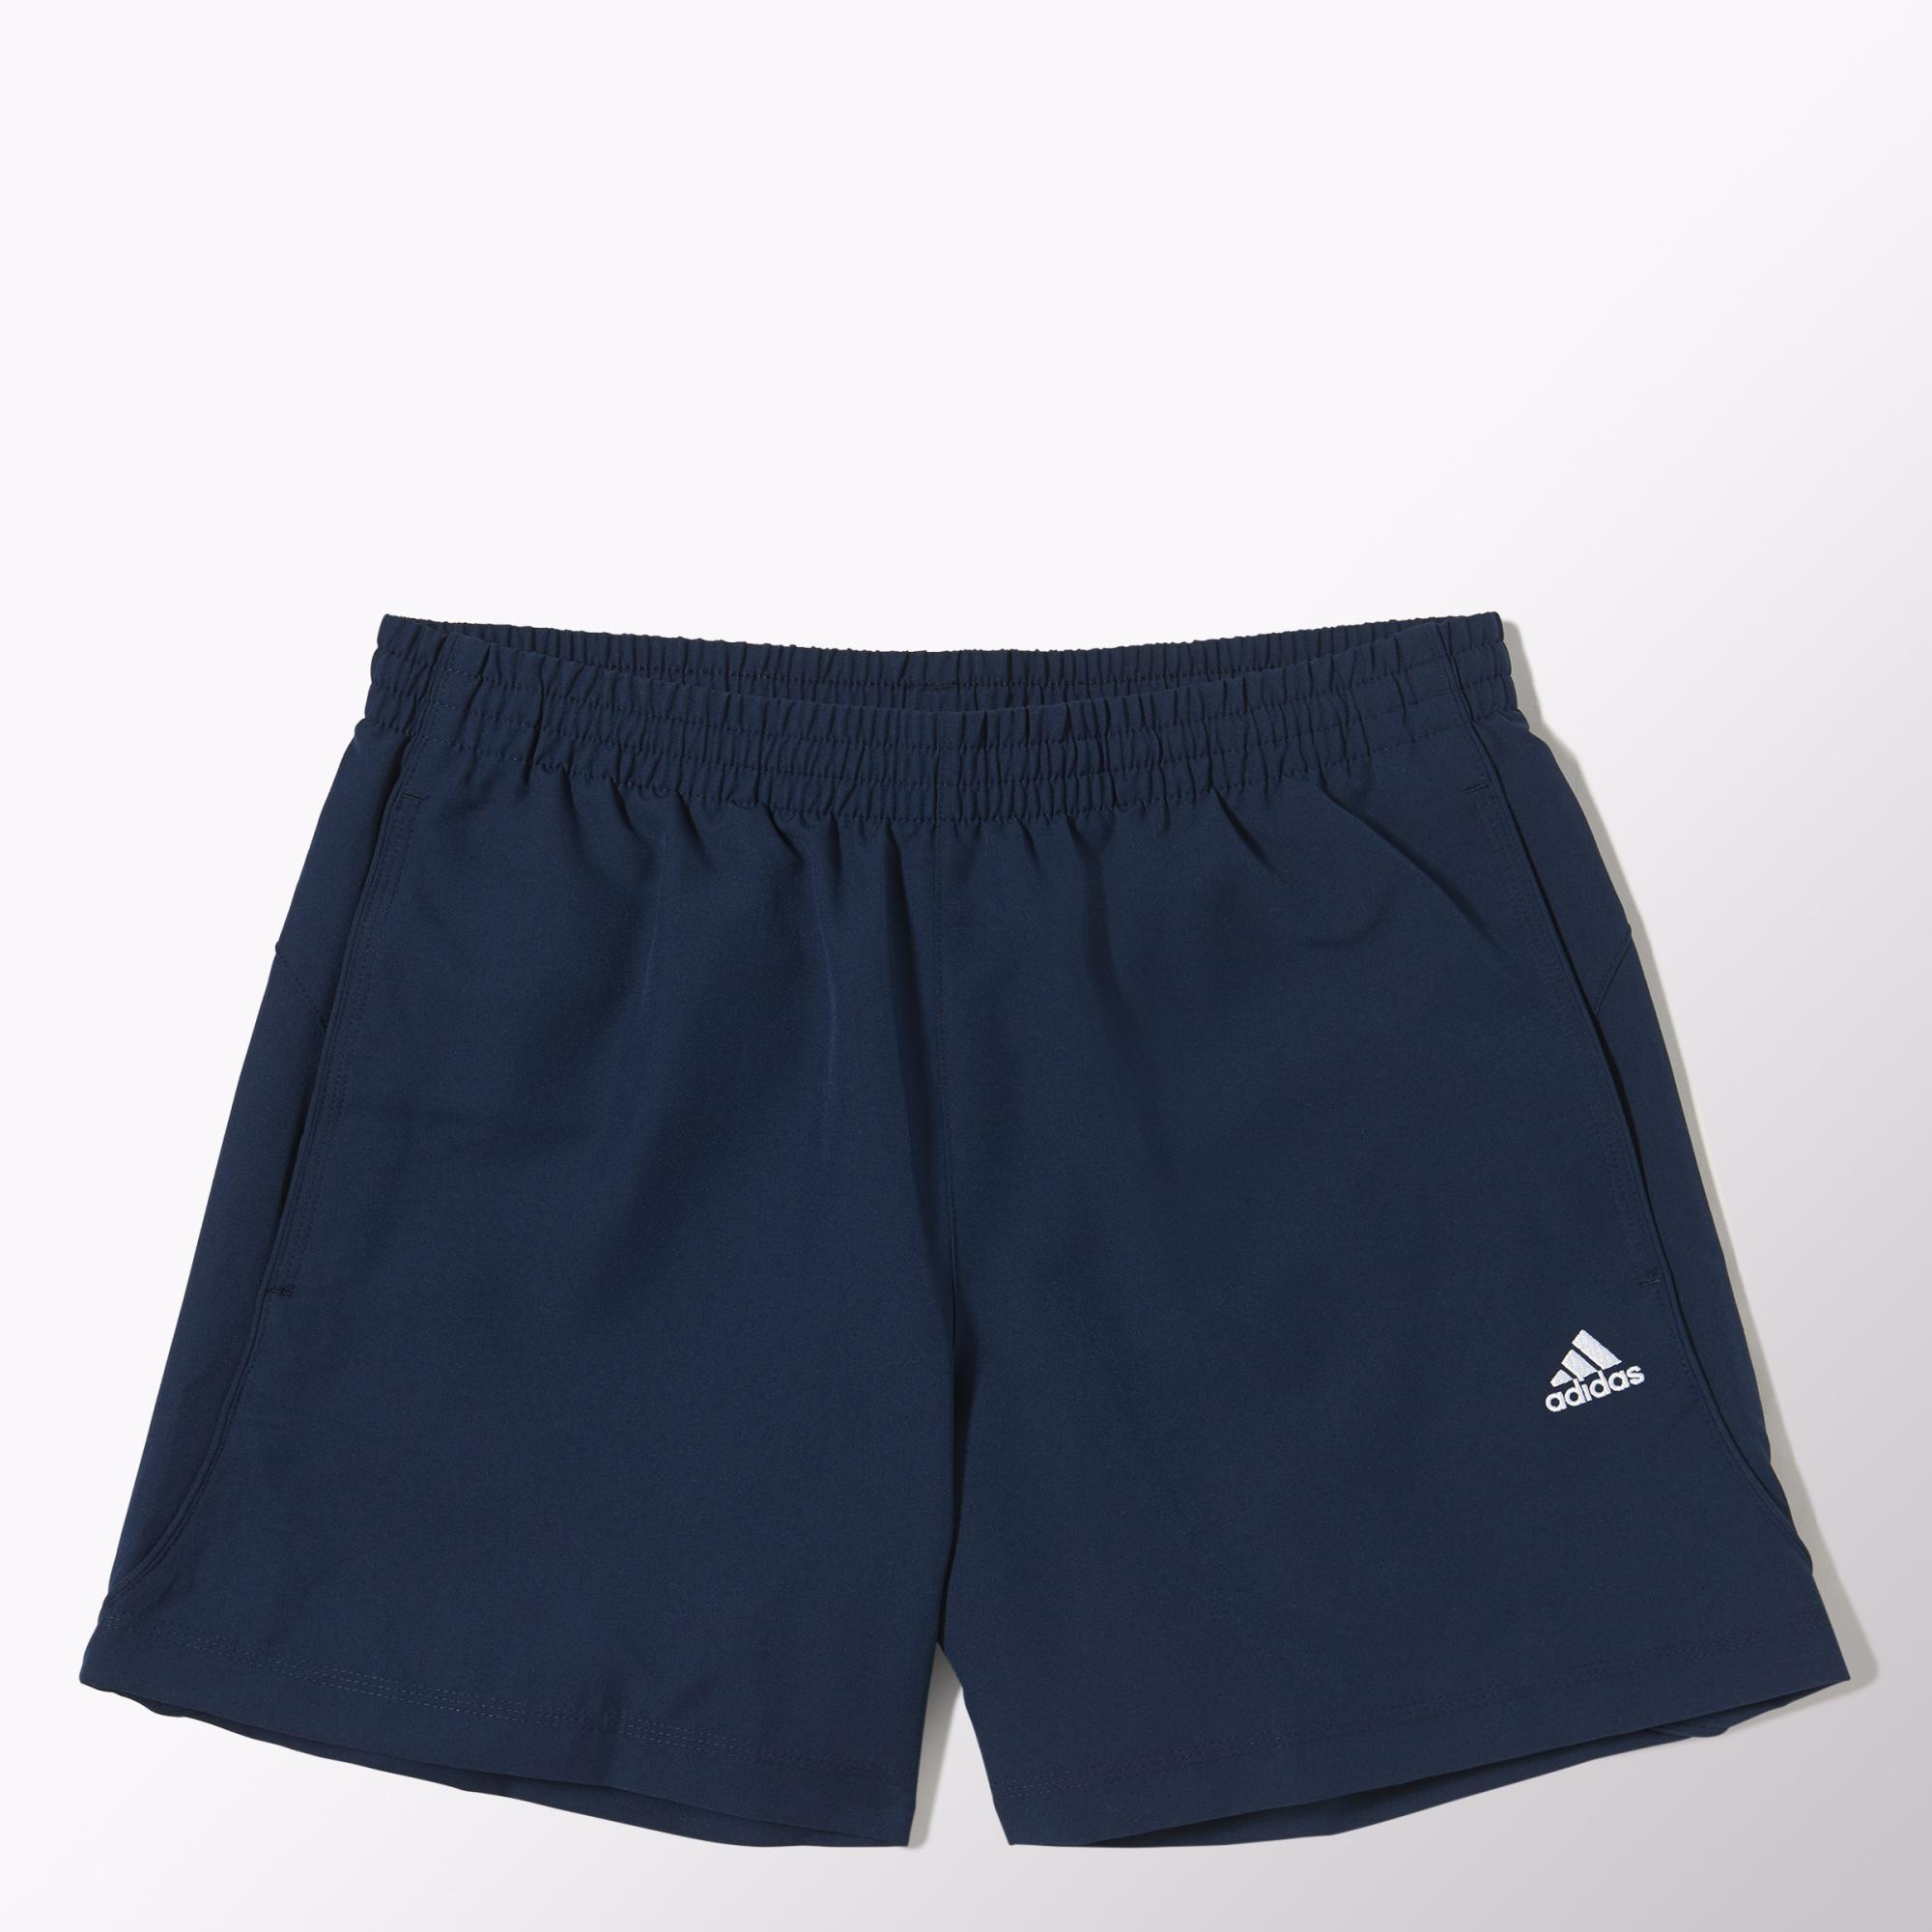 Adidas Mens Essentials Chelsea Shorts - Collegiate Navy